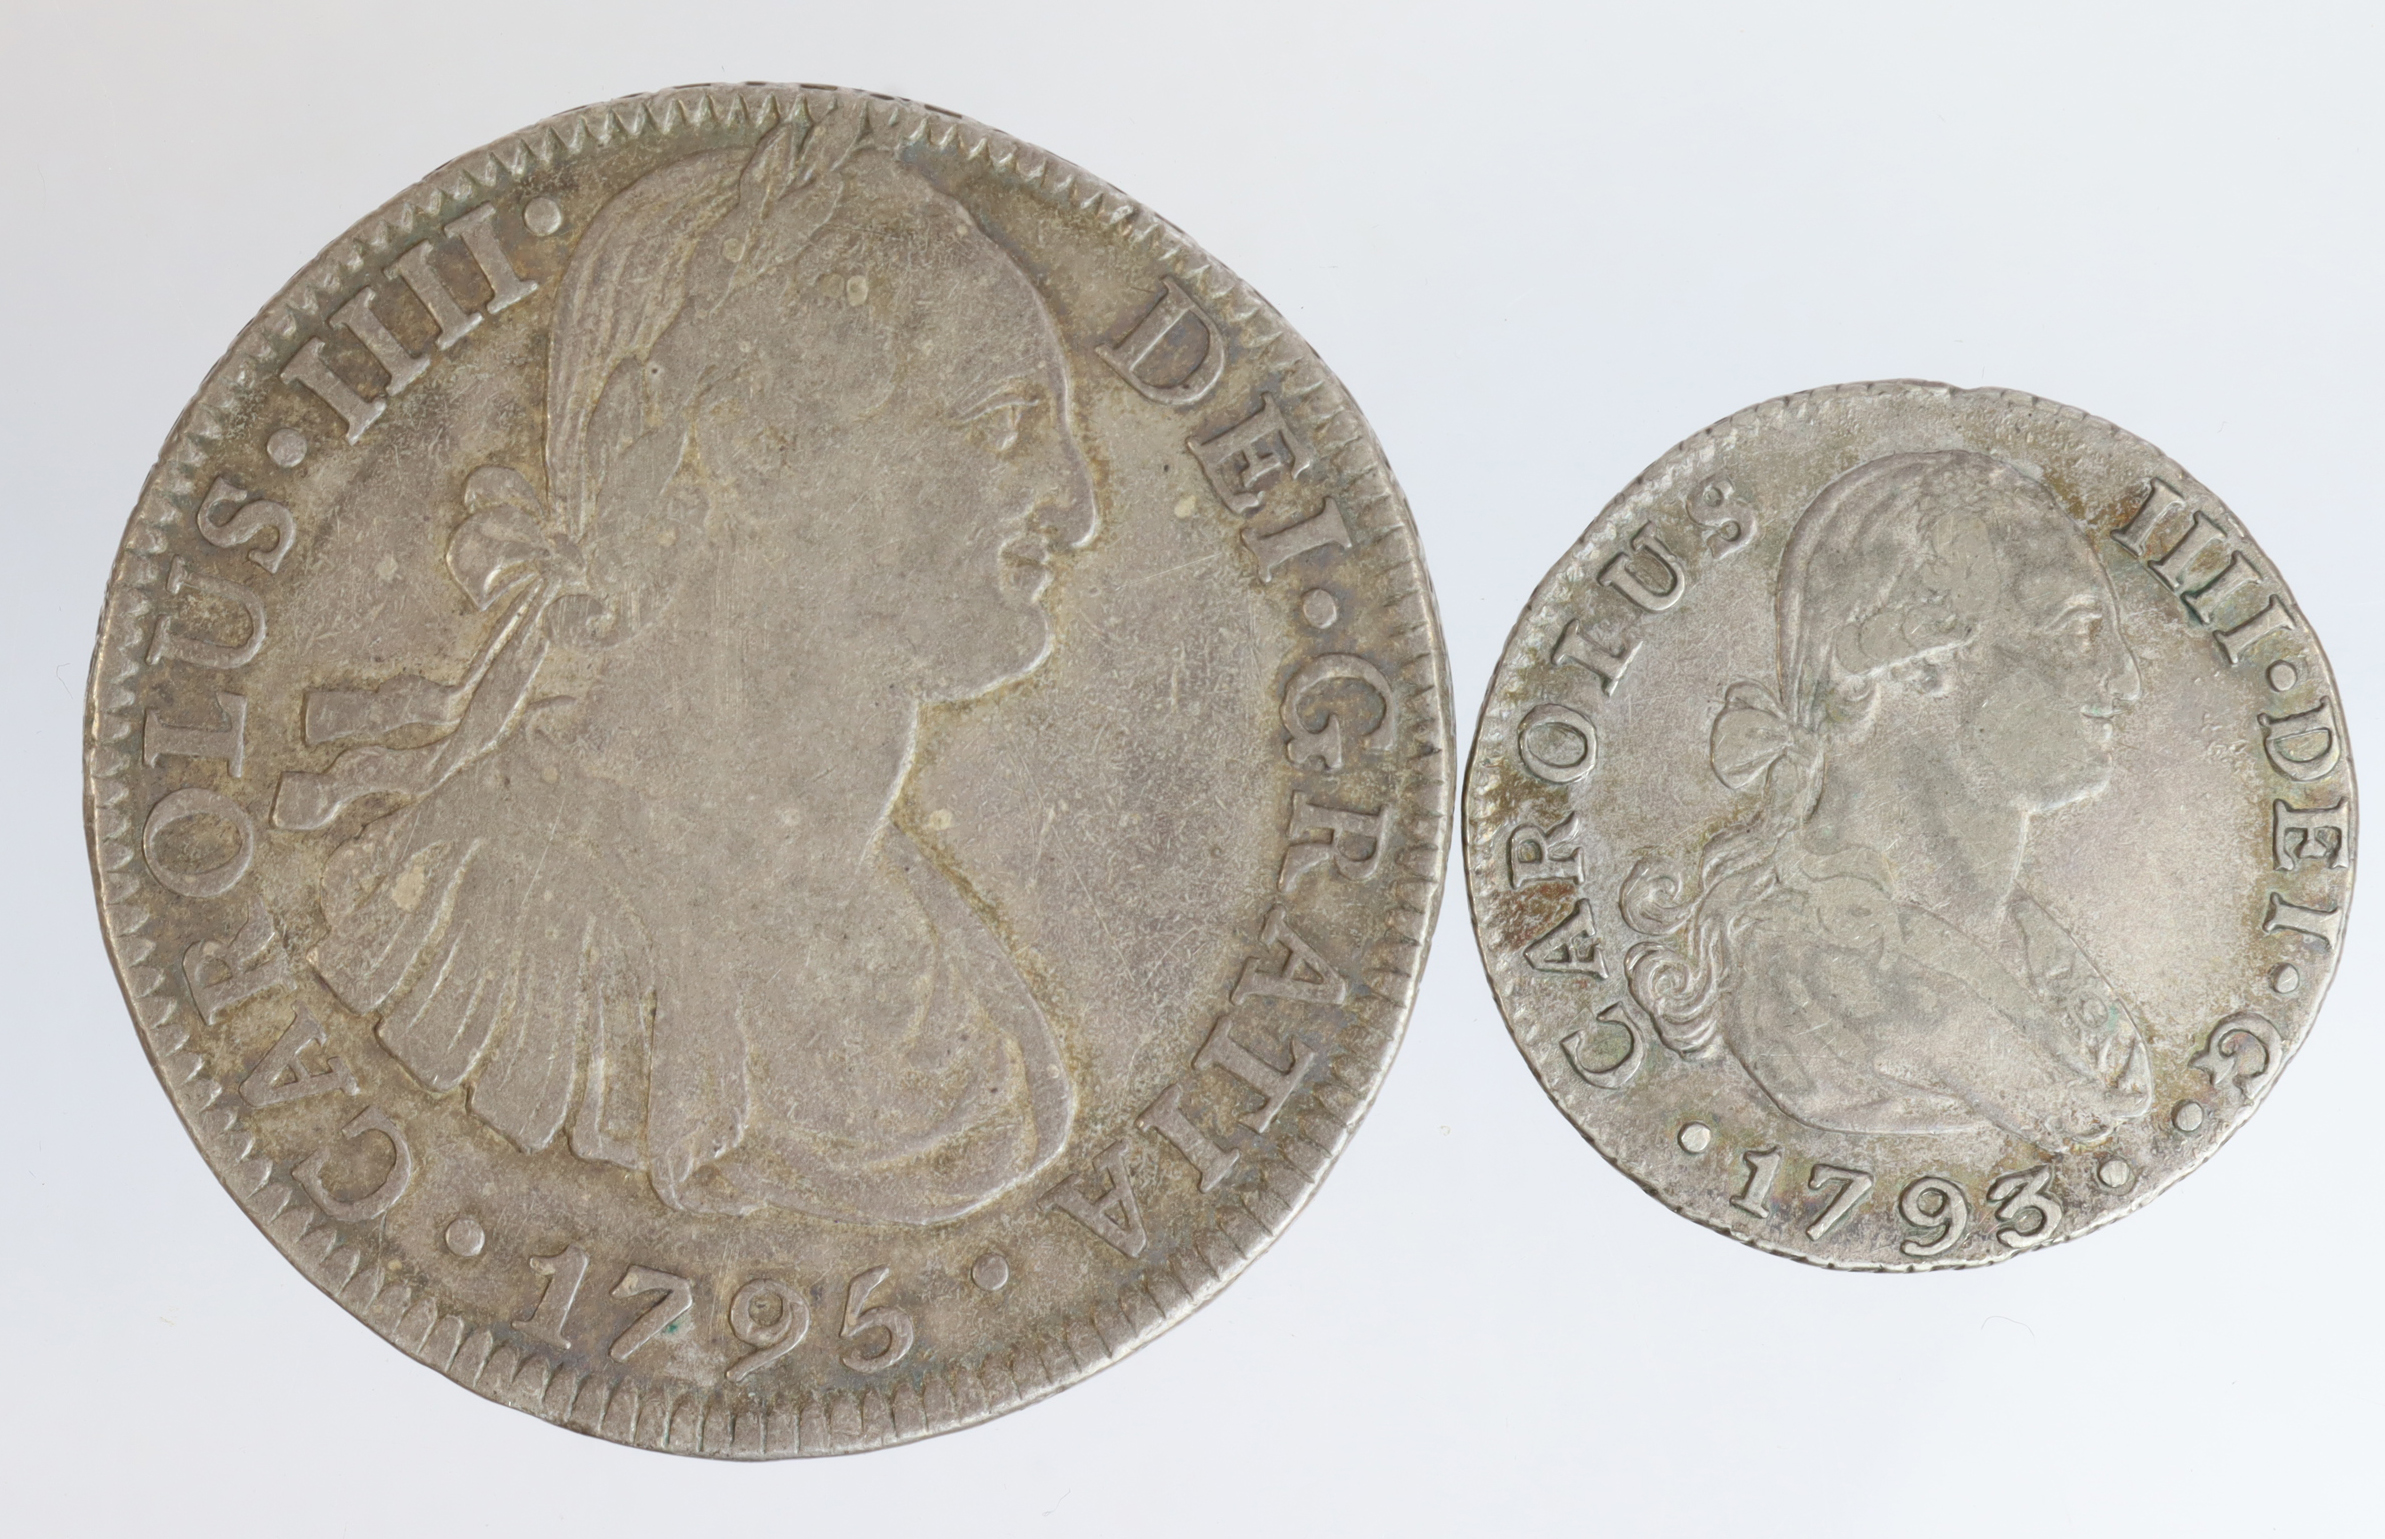 Spanish Colonial Silver (2): Mexico 8 Reales 1795 Mo FM, nVF, and Chile 2 Reales 1793 S C.N, aVF